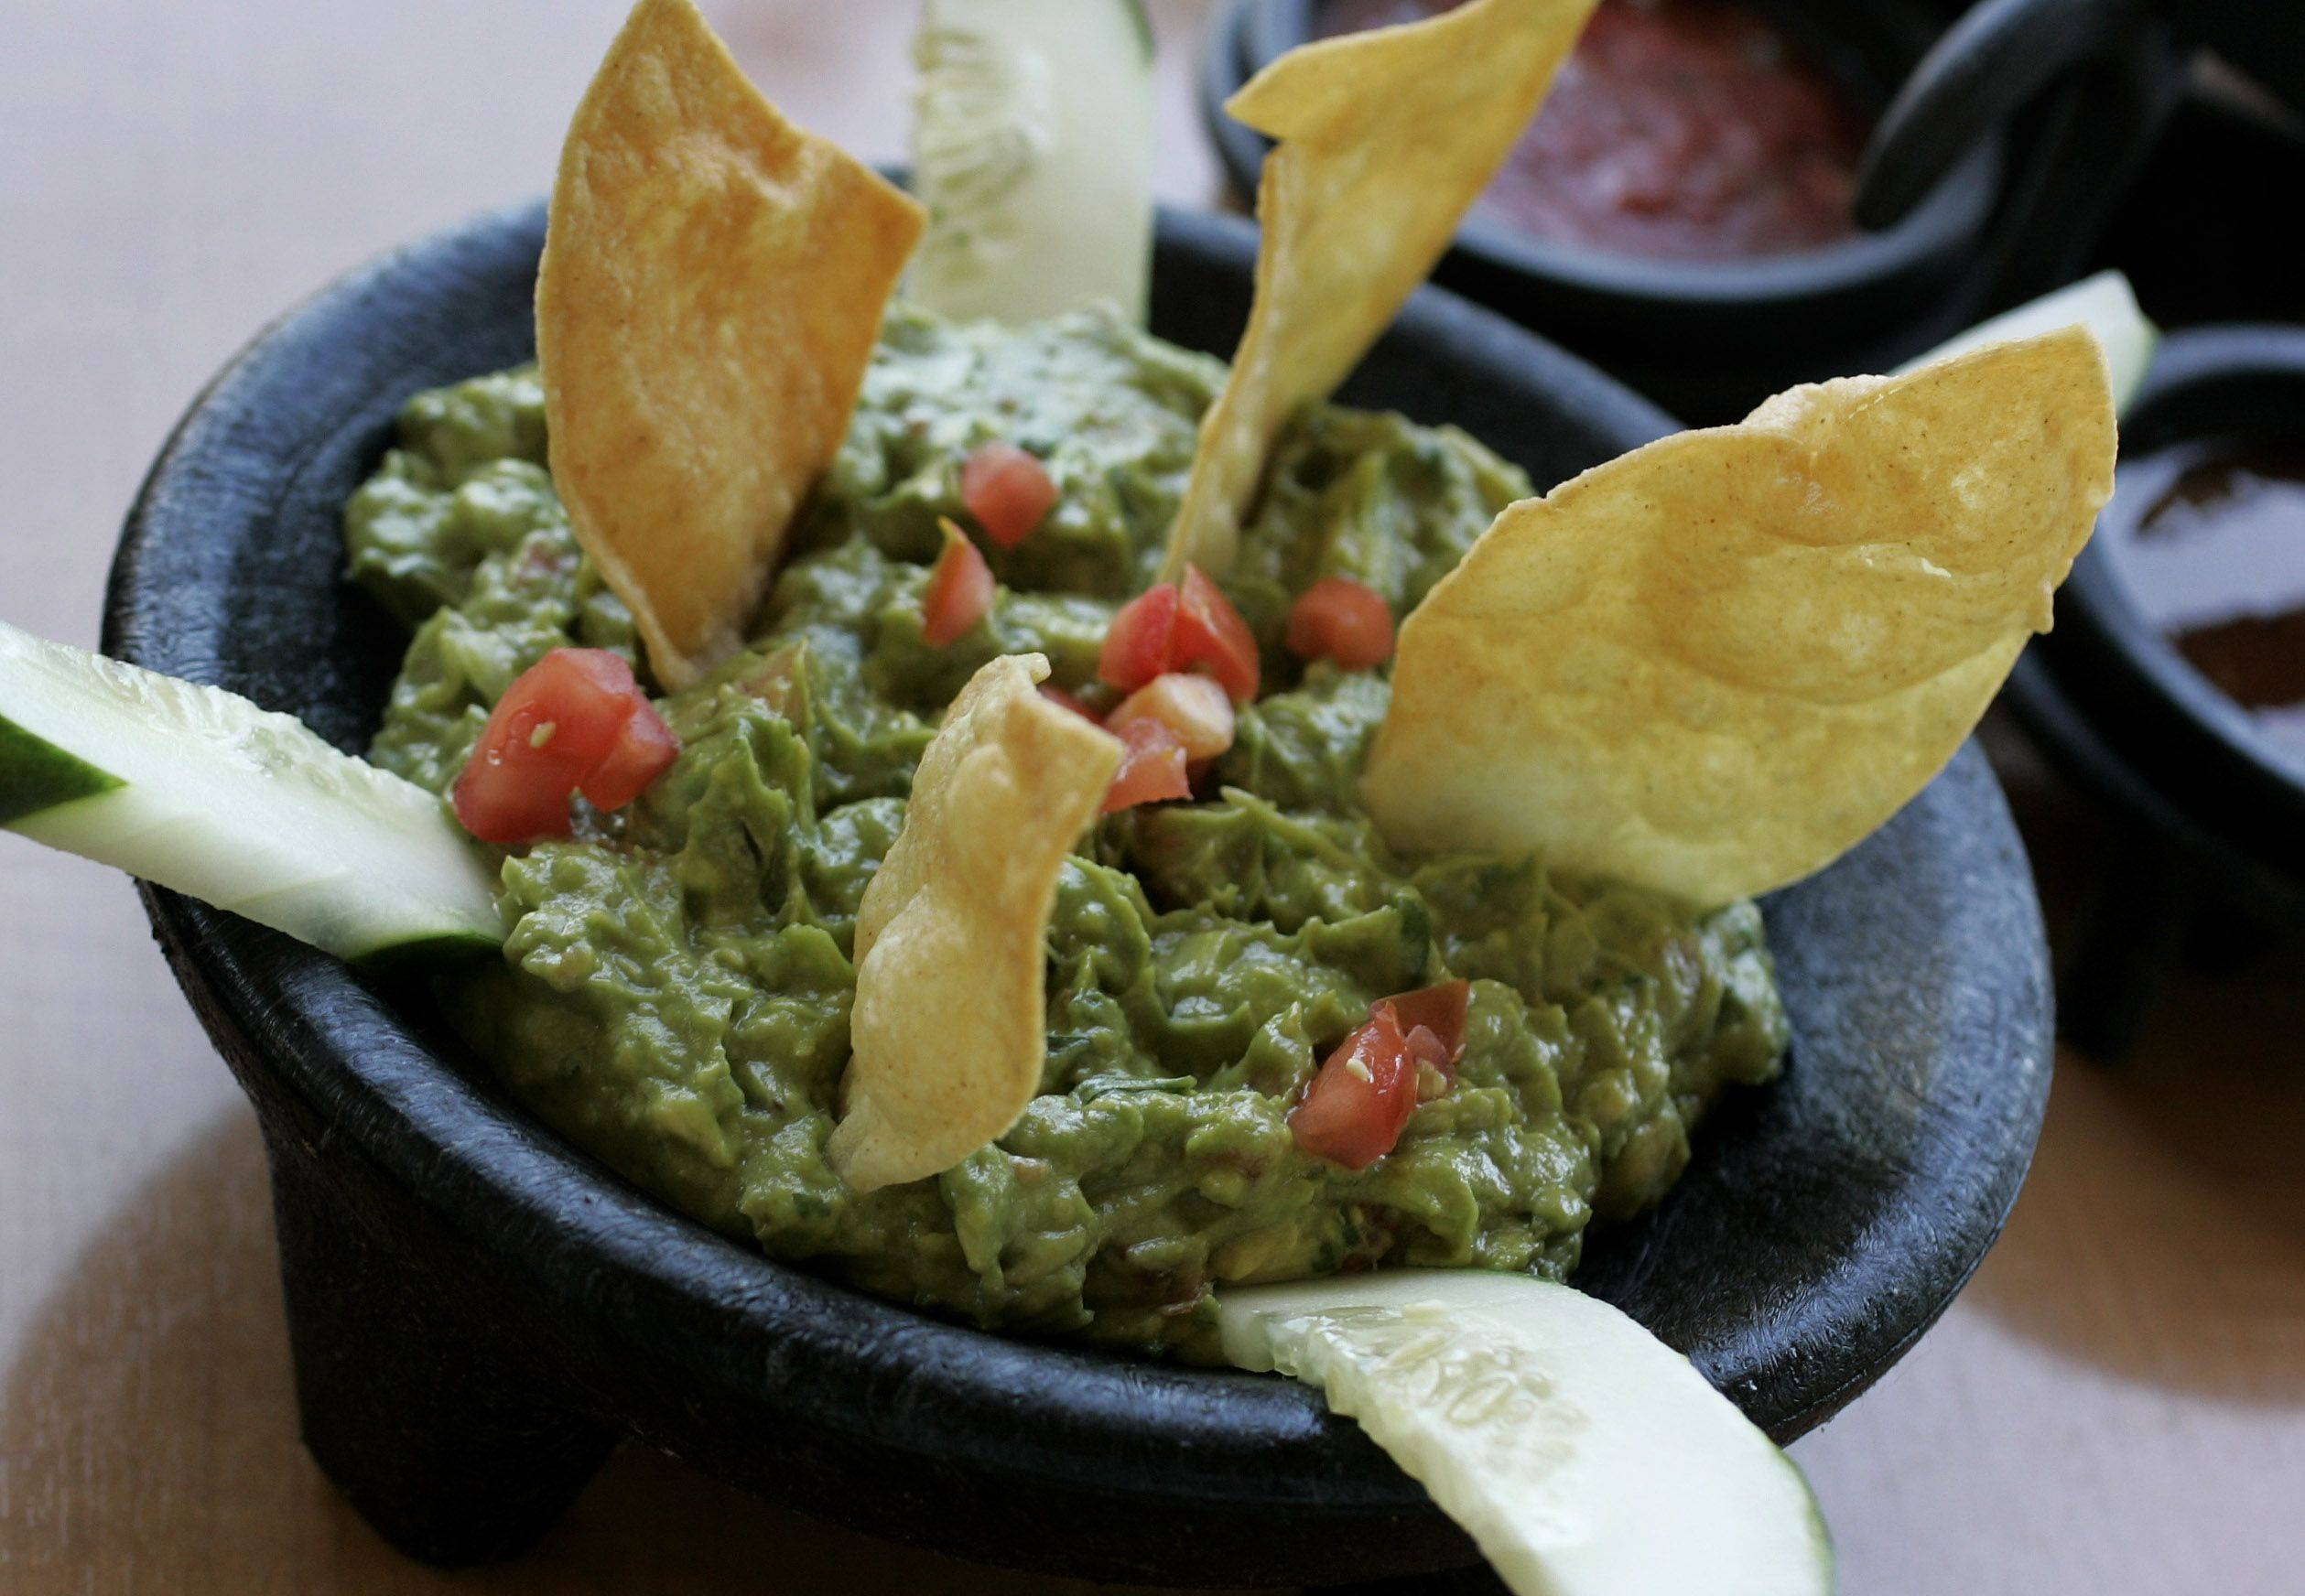 Guacamole and chips make an easy choice for a starter at Casa Bonita in Libertyville.